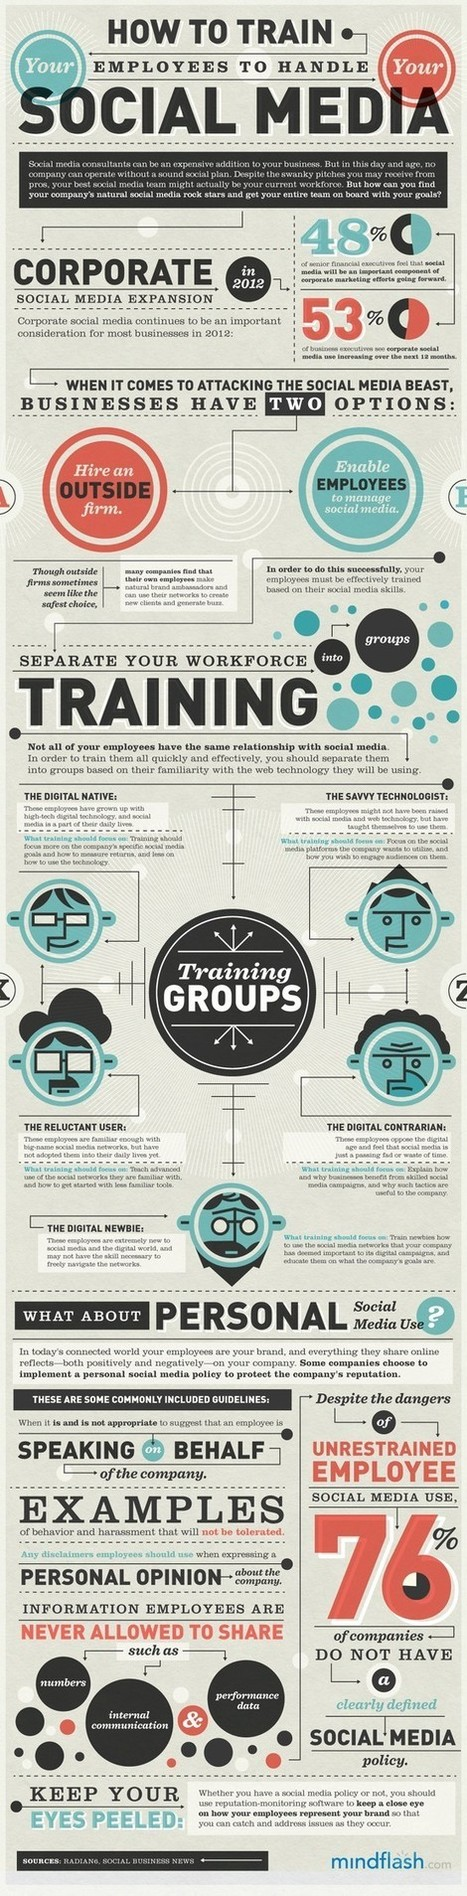 Educate Your Own Employees to Handle Social Media Well >> Infographic 2012 | The Social Media Learning Lab | Scoop.it